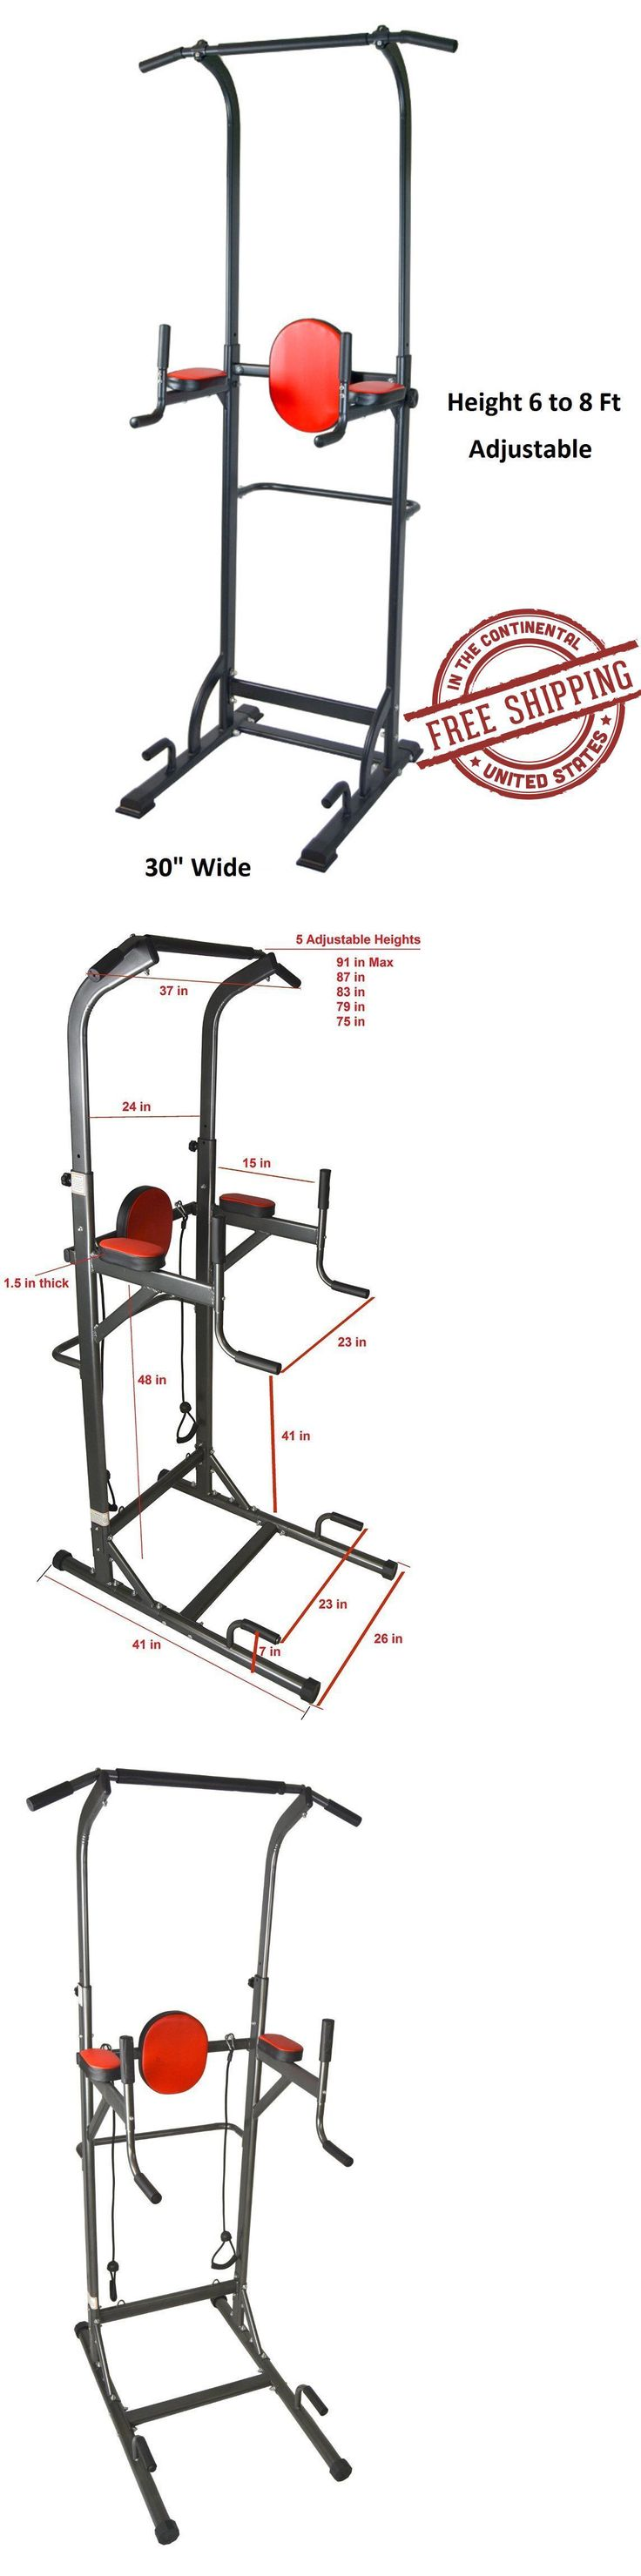 Pull Up Bars 179816: Pull Up Station Power Tower Vkr Chin-Up Bar Durable Sturdy Stand Dip Station New -> BUY IT NOW ONLY: $118.89 on eBay!